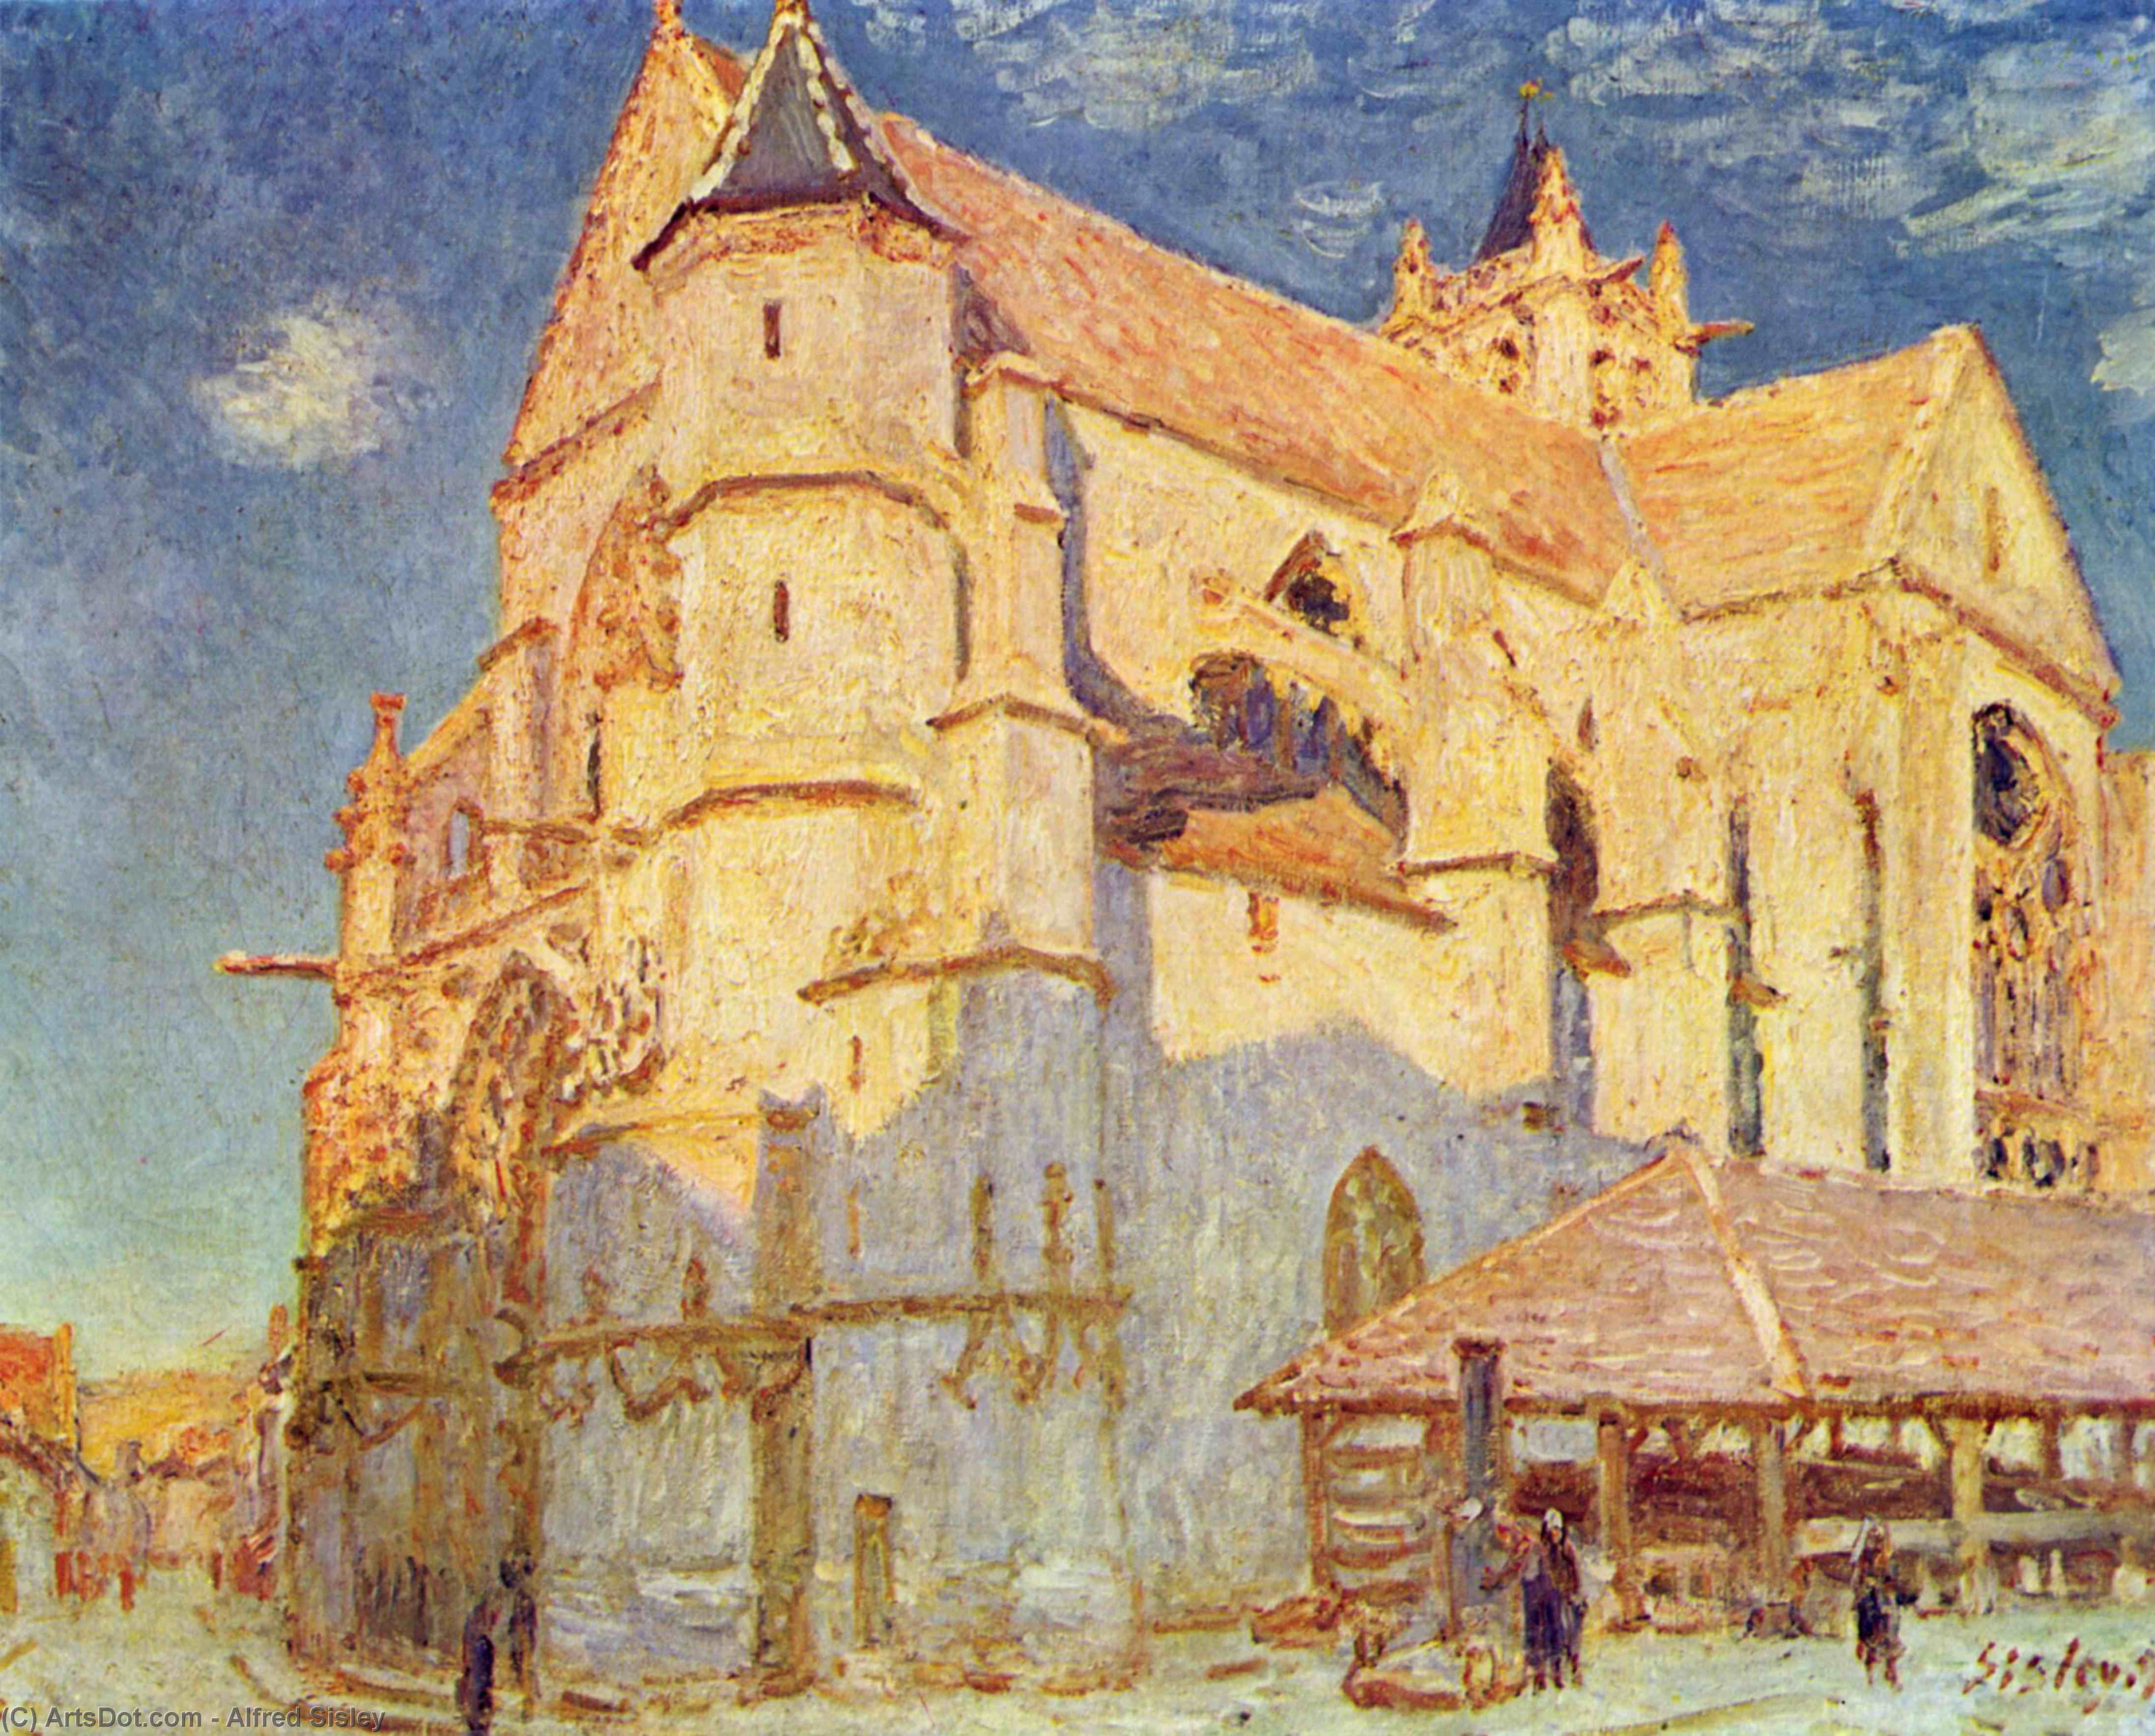 Wikioo.org - The Encyclopedia of Fine Arts - Painting, Artwork by Alfred Sisley - Church of Moret